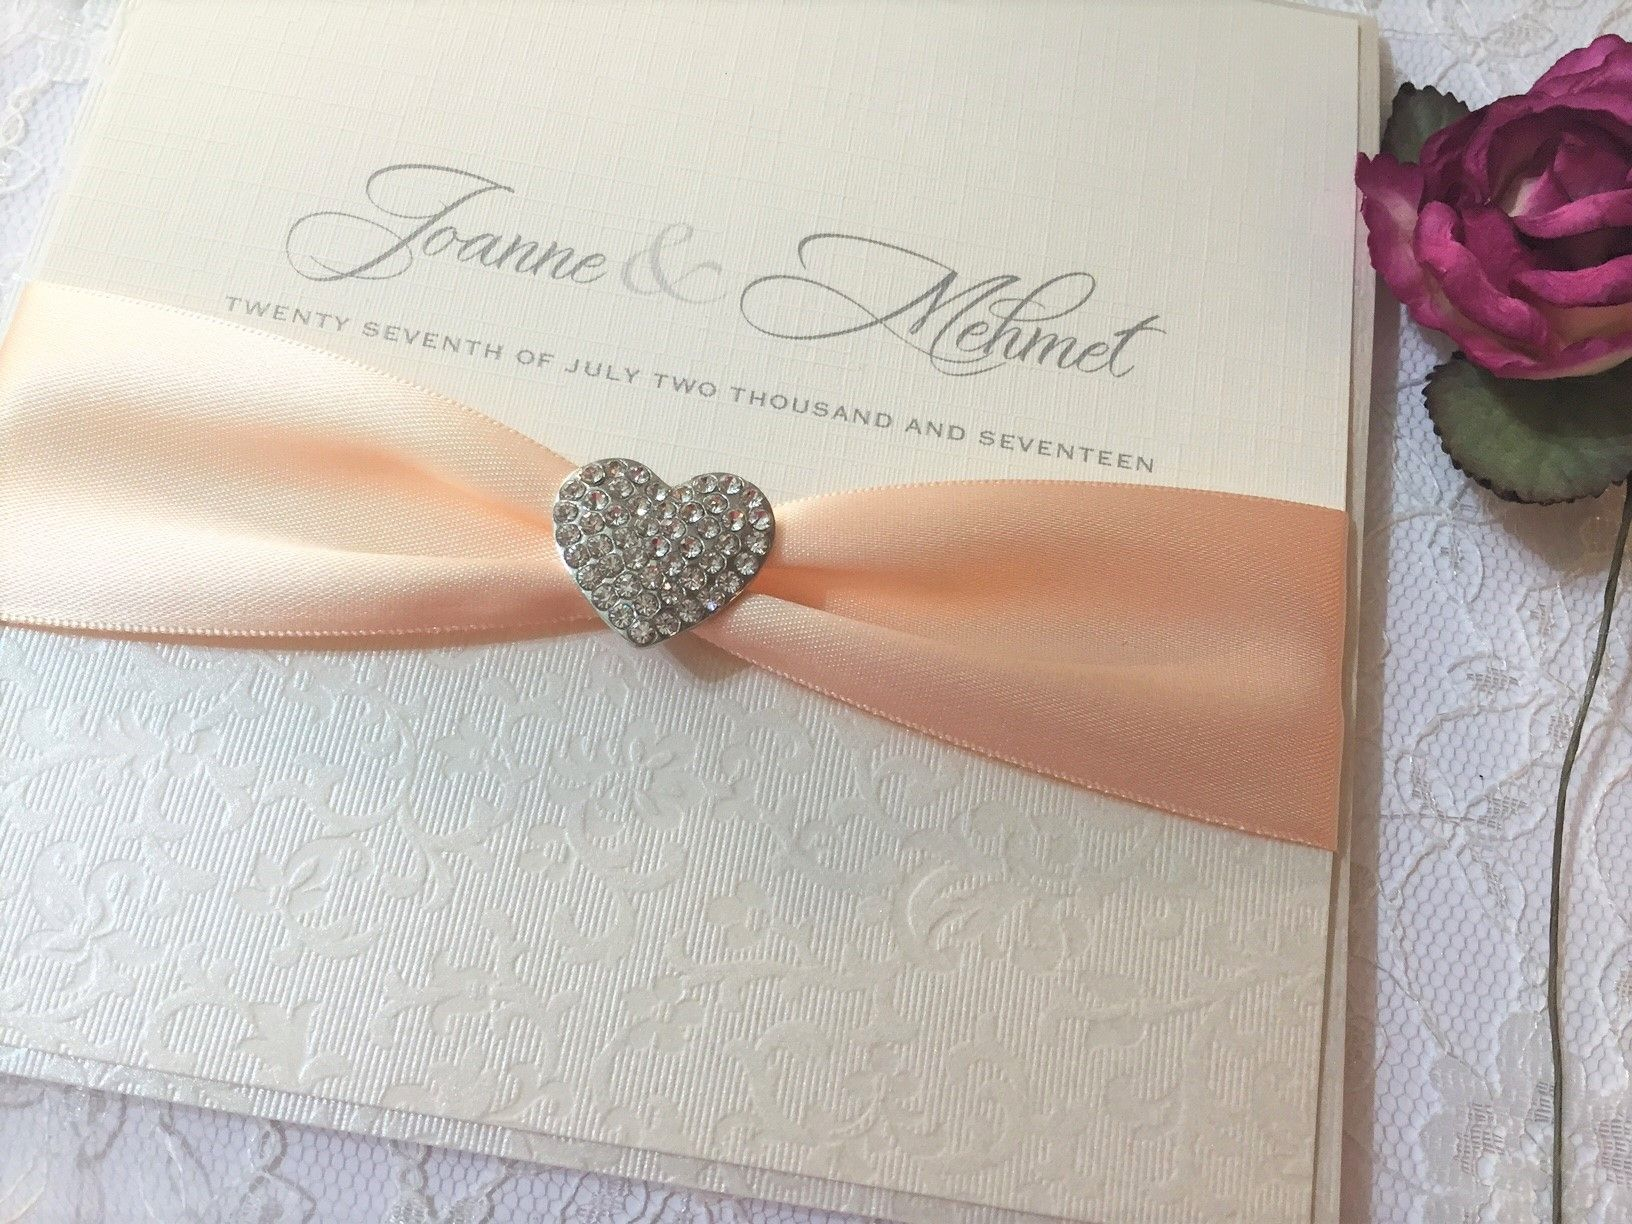 Ivory and peach invitation with diamante heart brooch